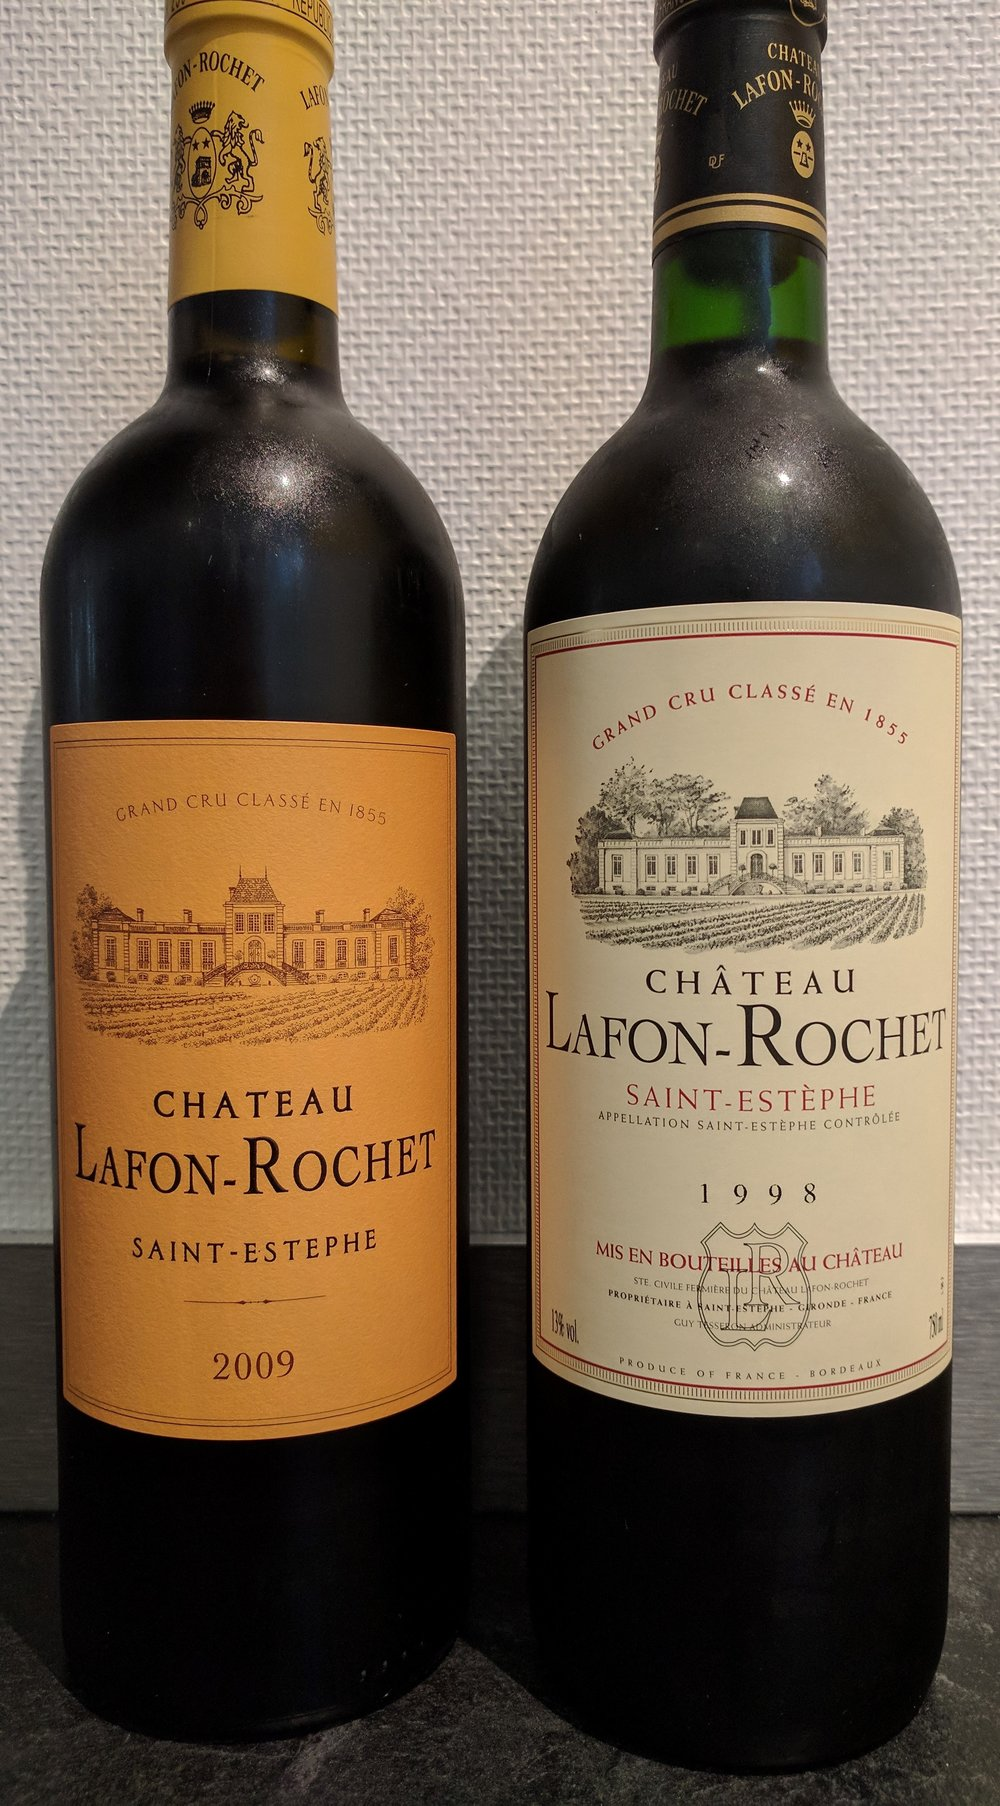 -                 Chateau Lafon-Rochet implemented the yellow label to match its repainted estate. A label from before the estate's repainting is on the right.